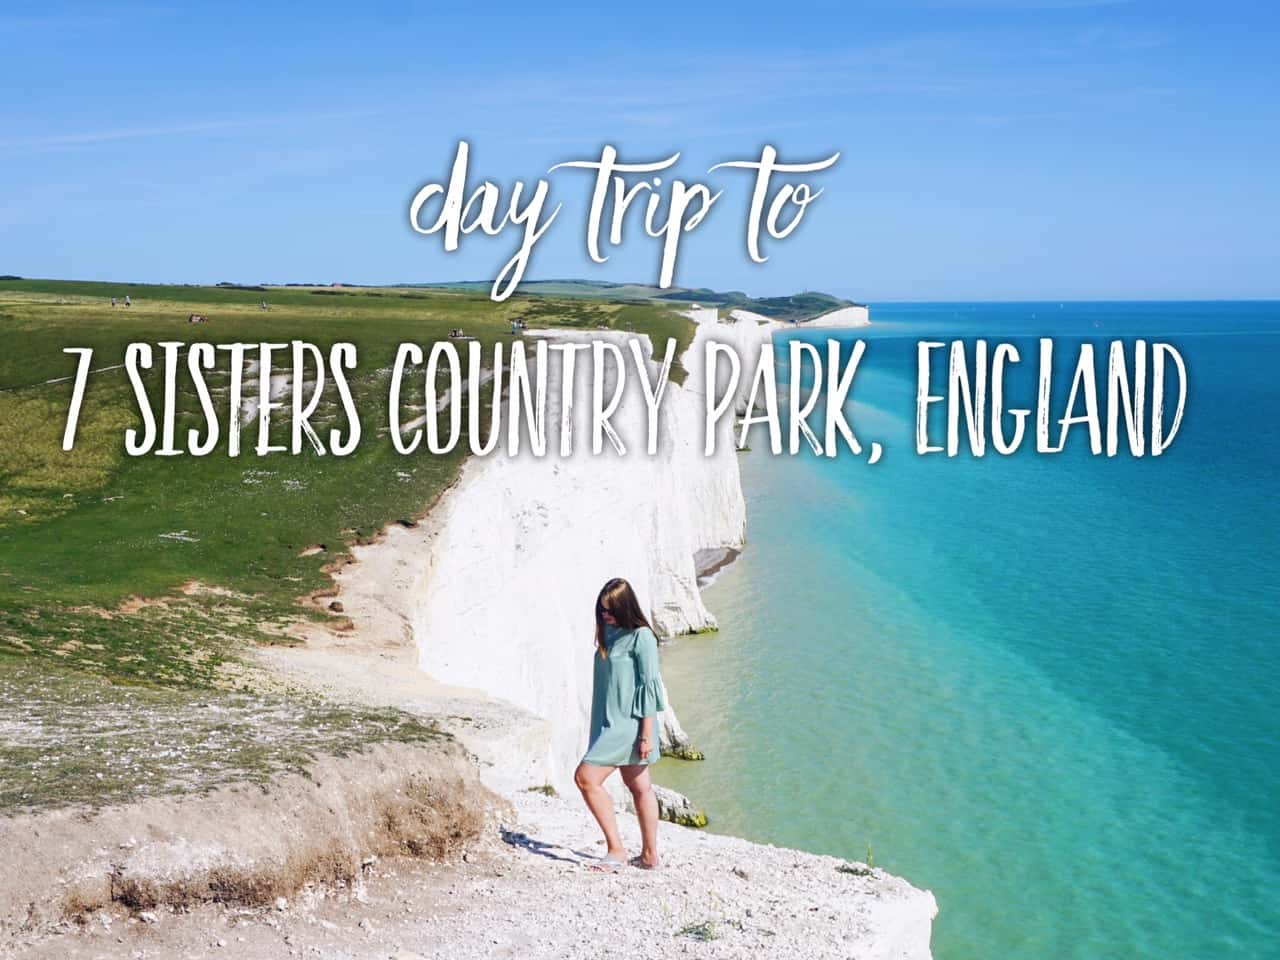 Day Trip from London to Seven Sisters Country Park and Cliffs